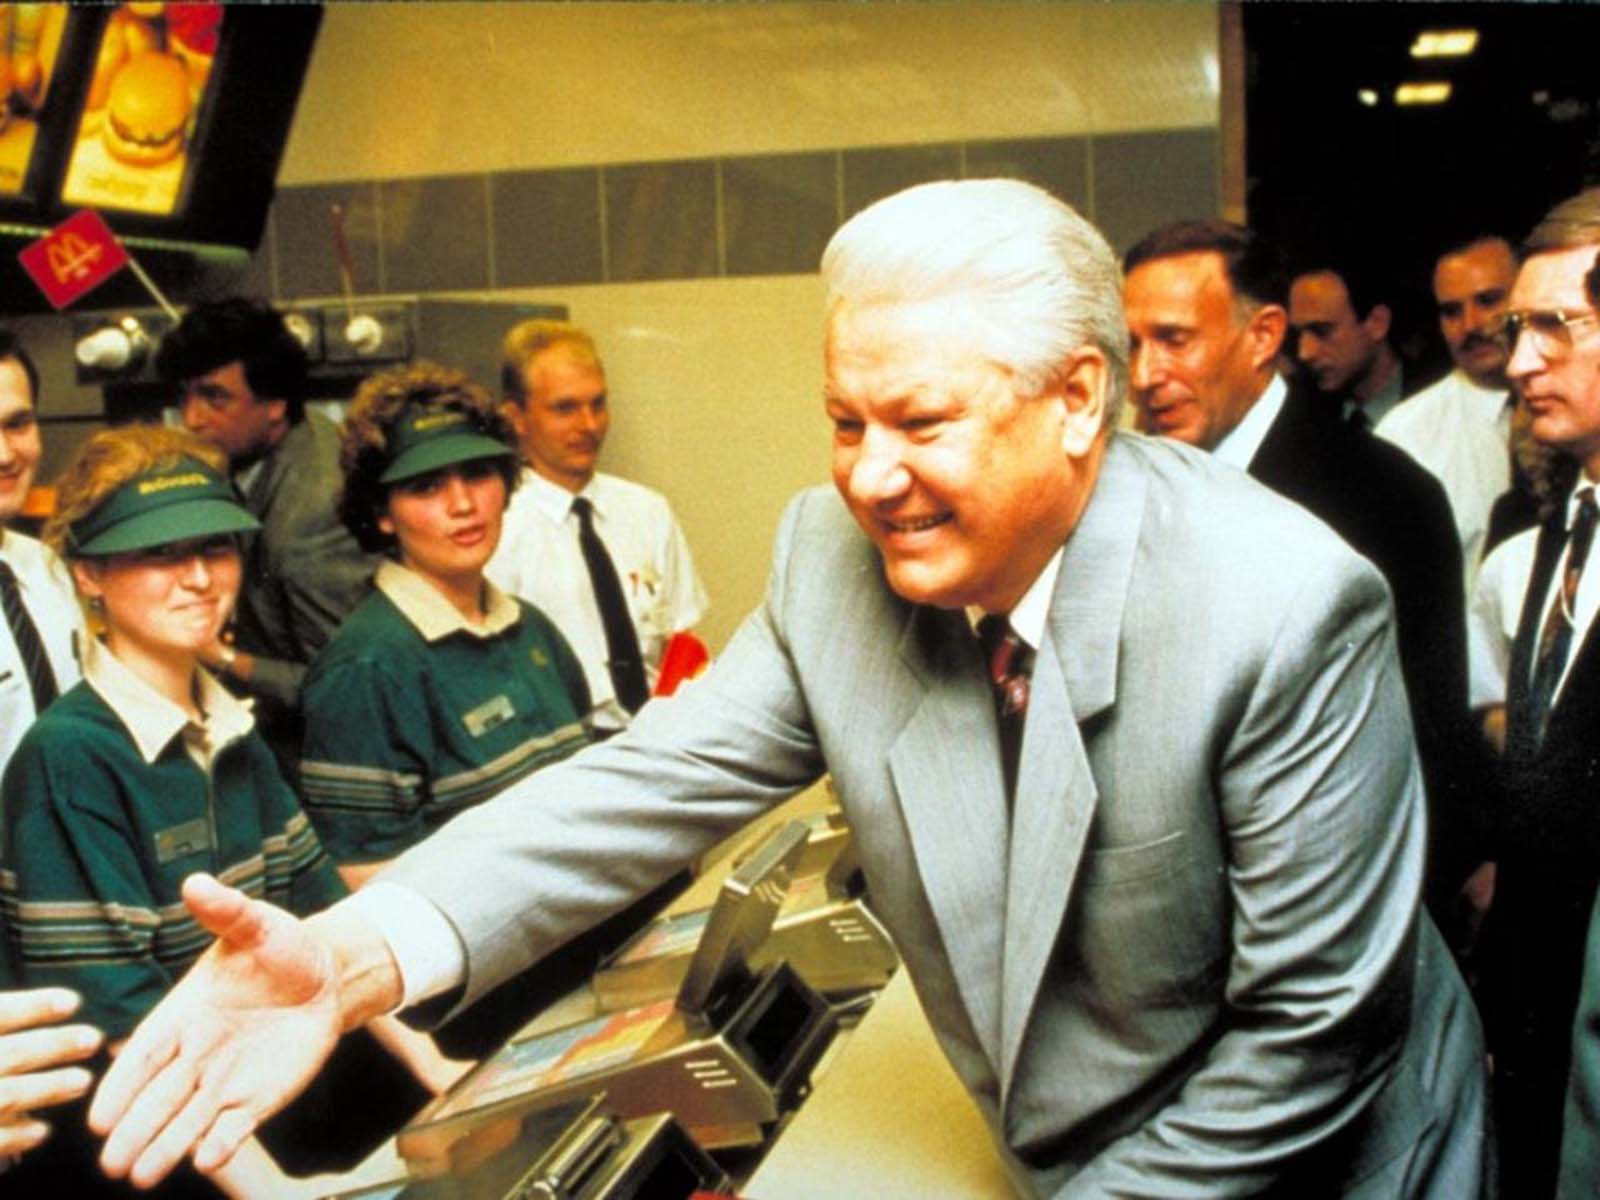 The opening ceremony of the second restaurant in 1993 was even attended by President Boris Yeltsin.